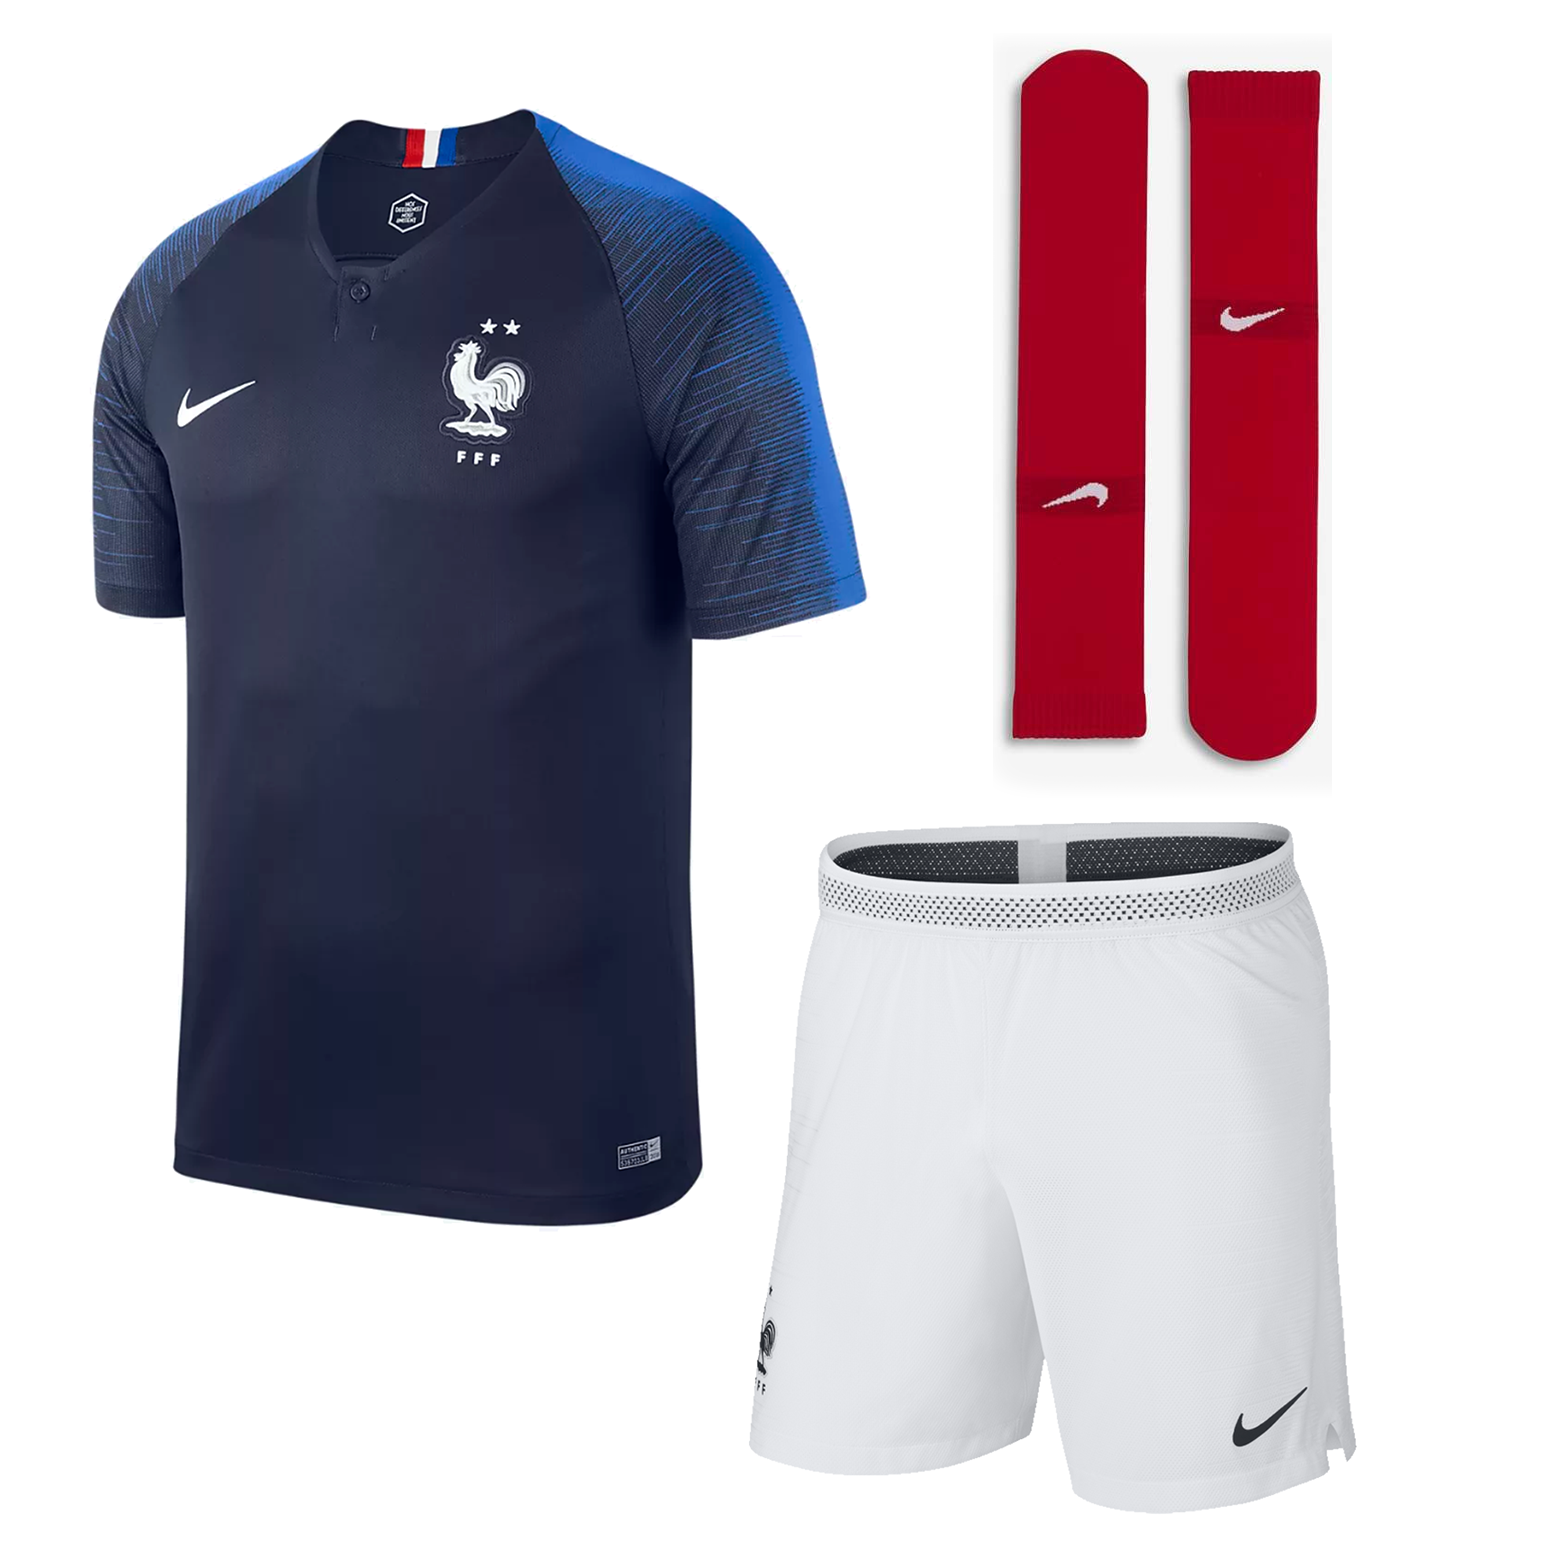 TENUE DE FOOTBALL FFF 2 ÉTOILES 2018/19 HOMME FRANCE FOOTBALL